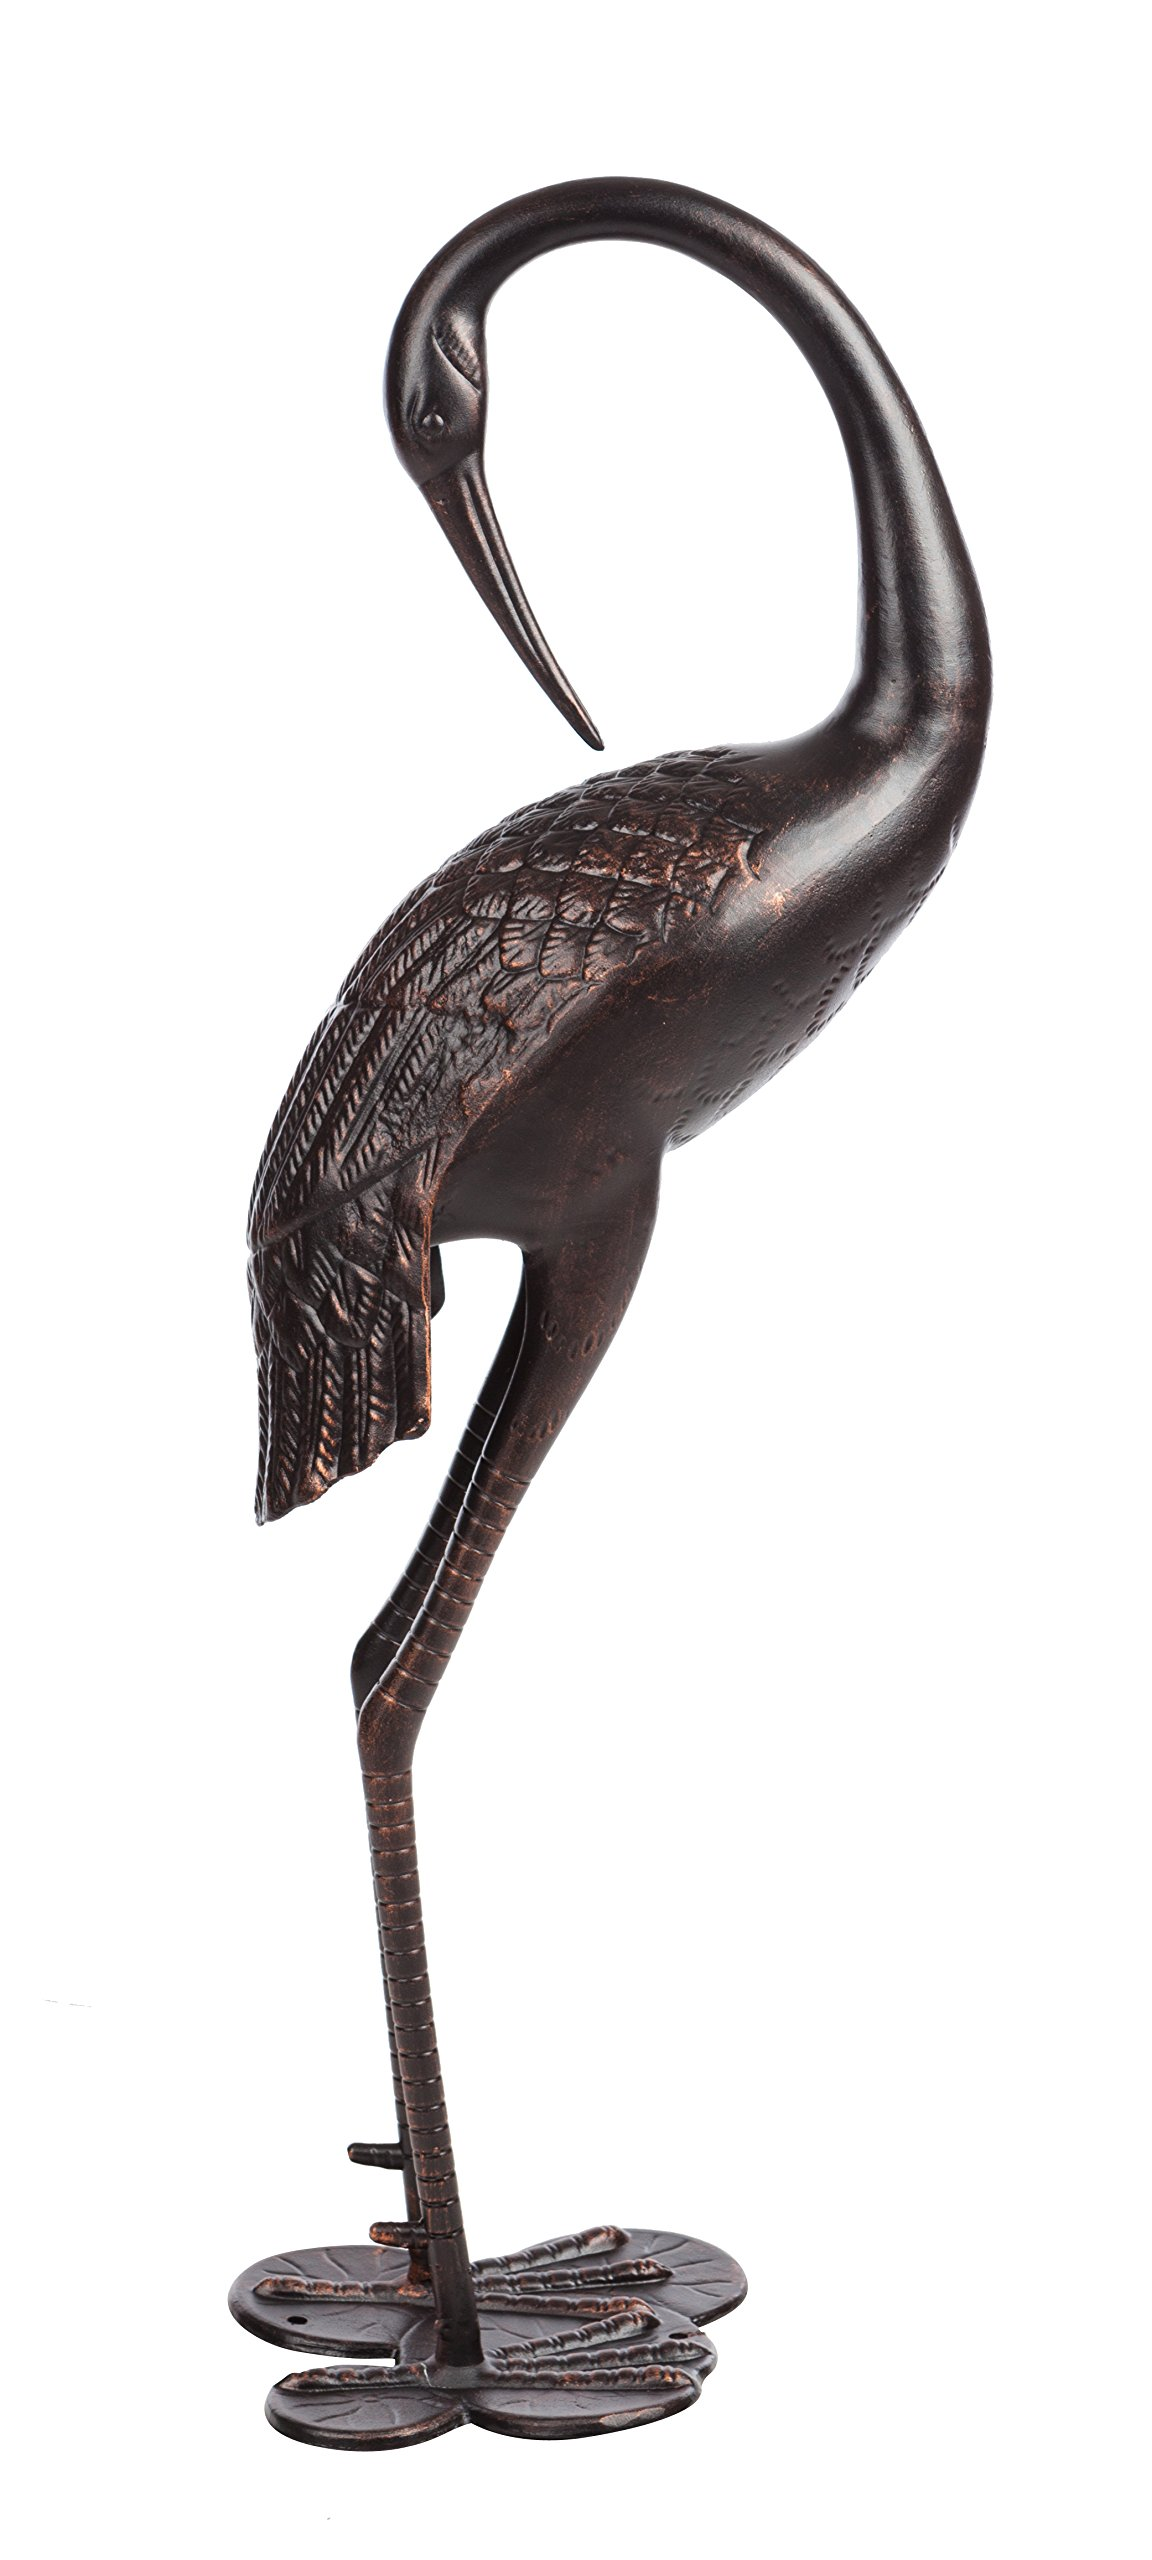 Patio Sense Cast Aluminum Female Crane, Antique Bronze Finish by Patio Sense